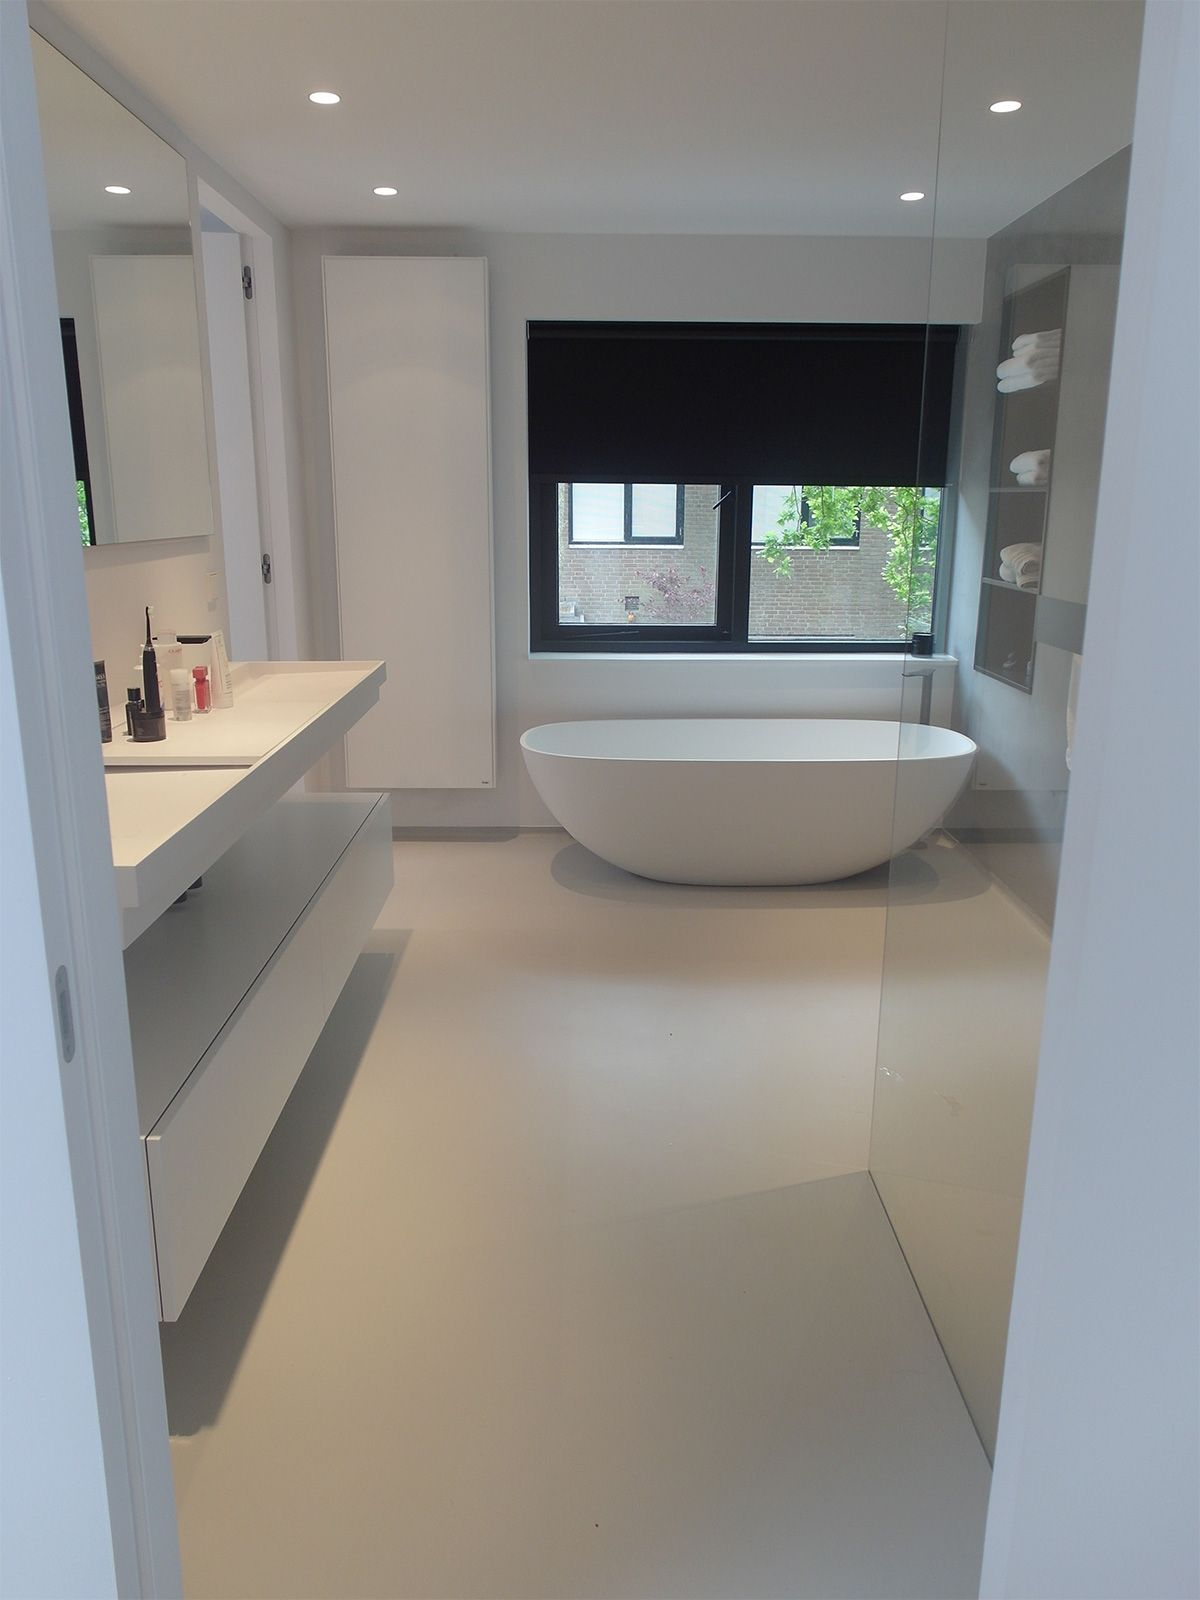 Gietvloer en microcement badkamer wit grijs | Ideas for bathroom ...